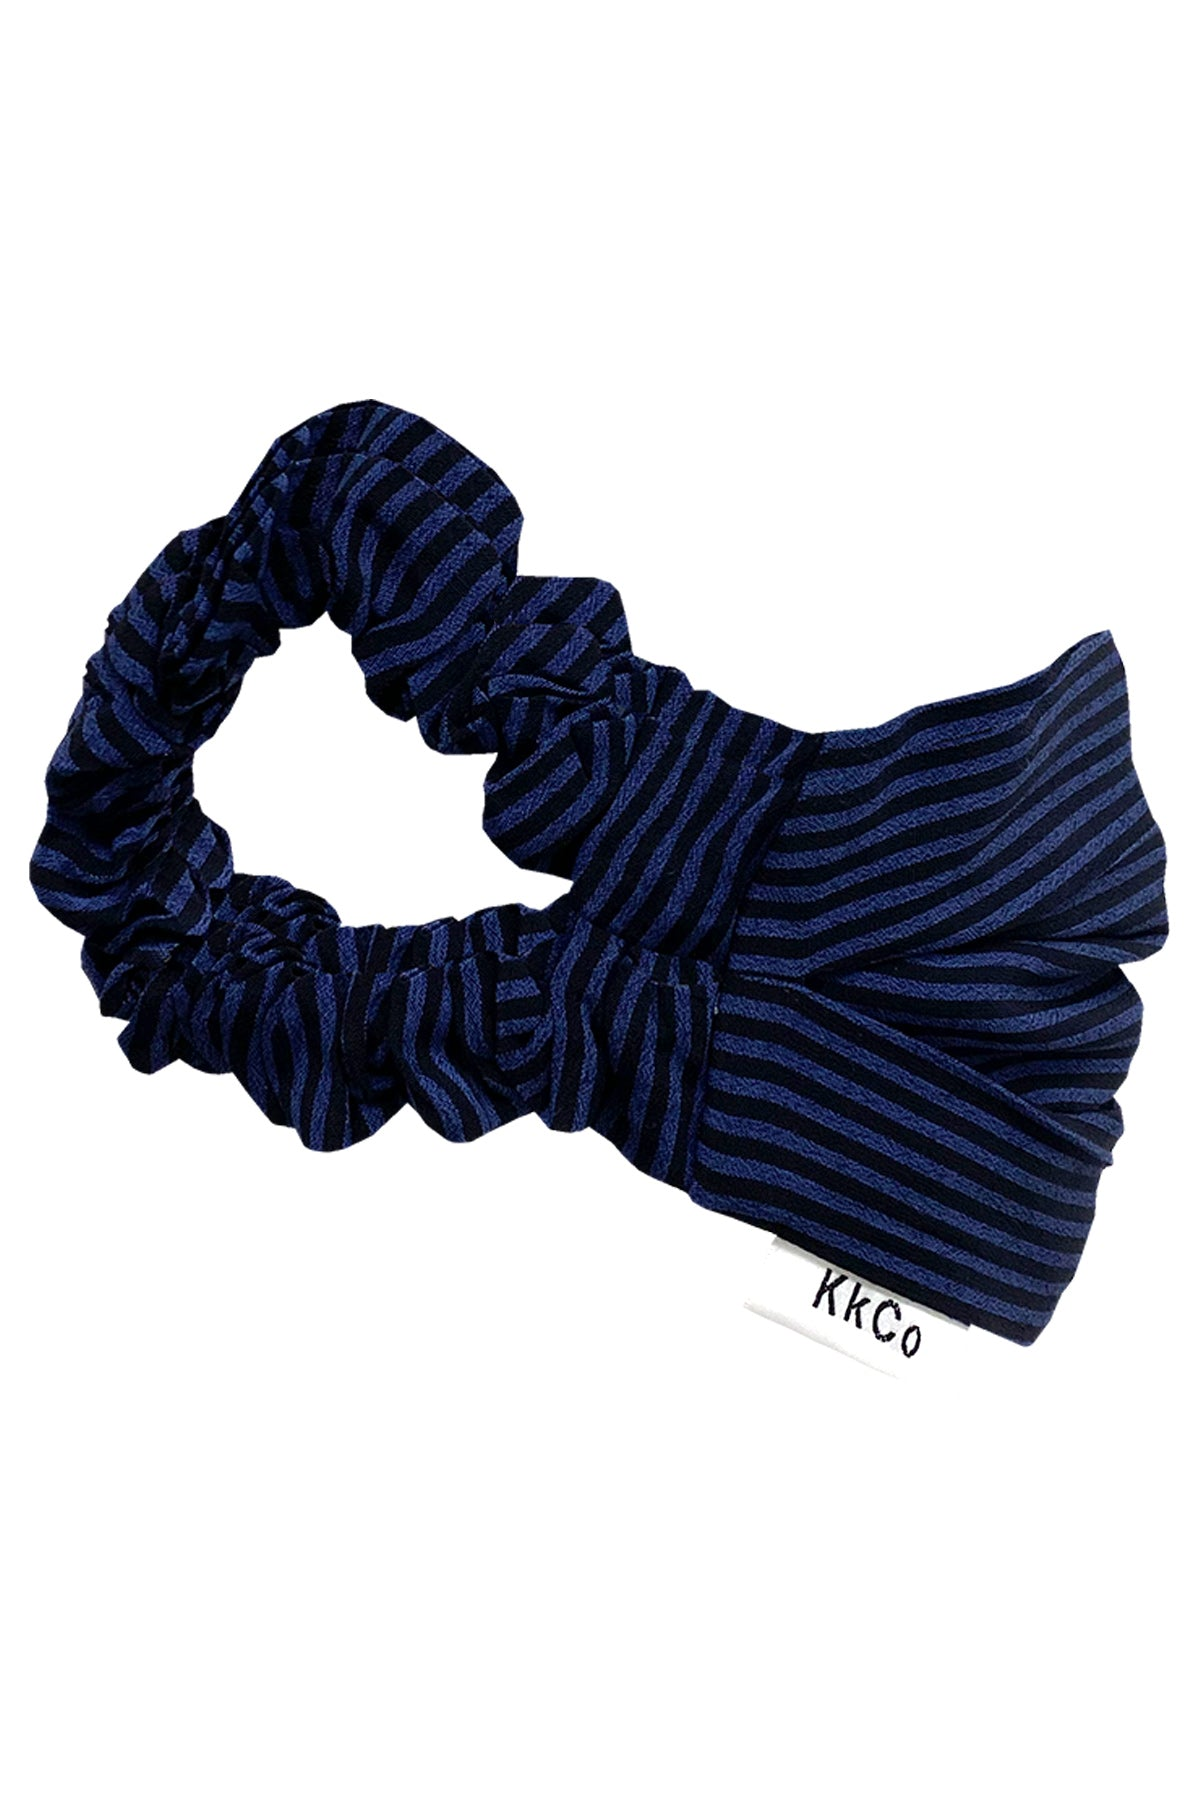 Face Mask in Navy Stripe